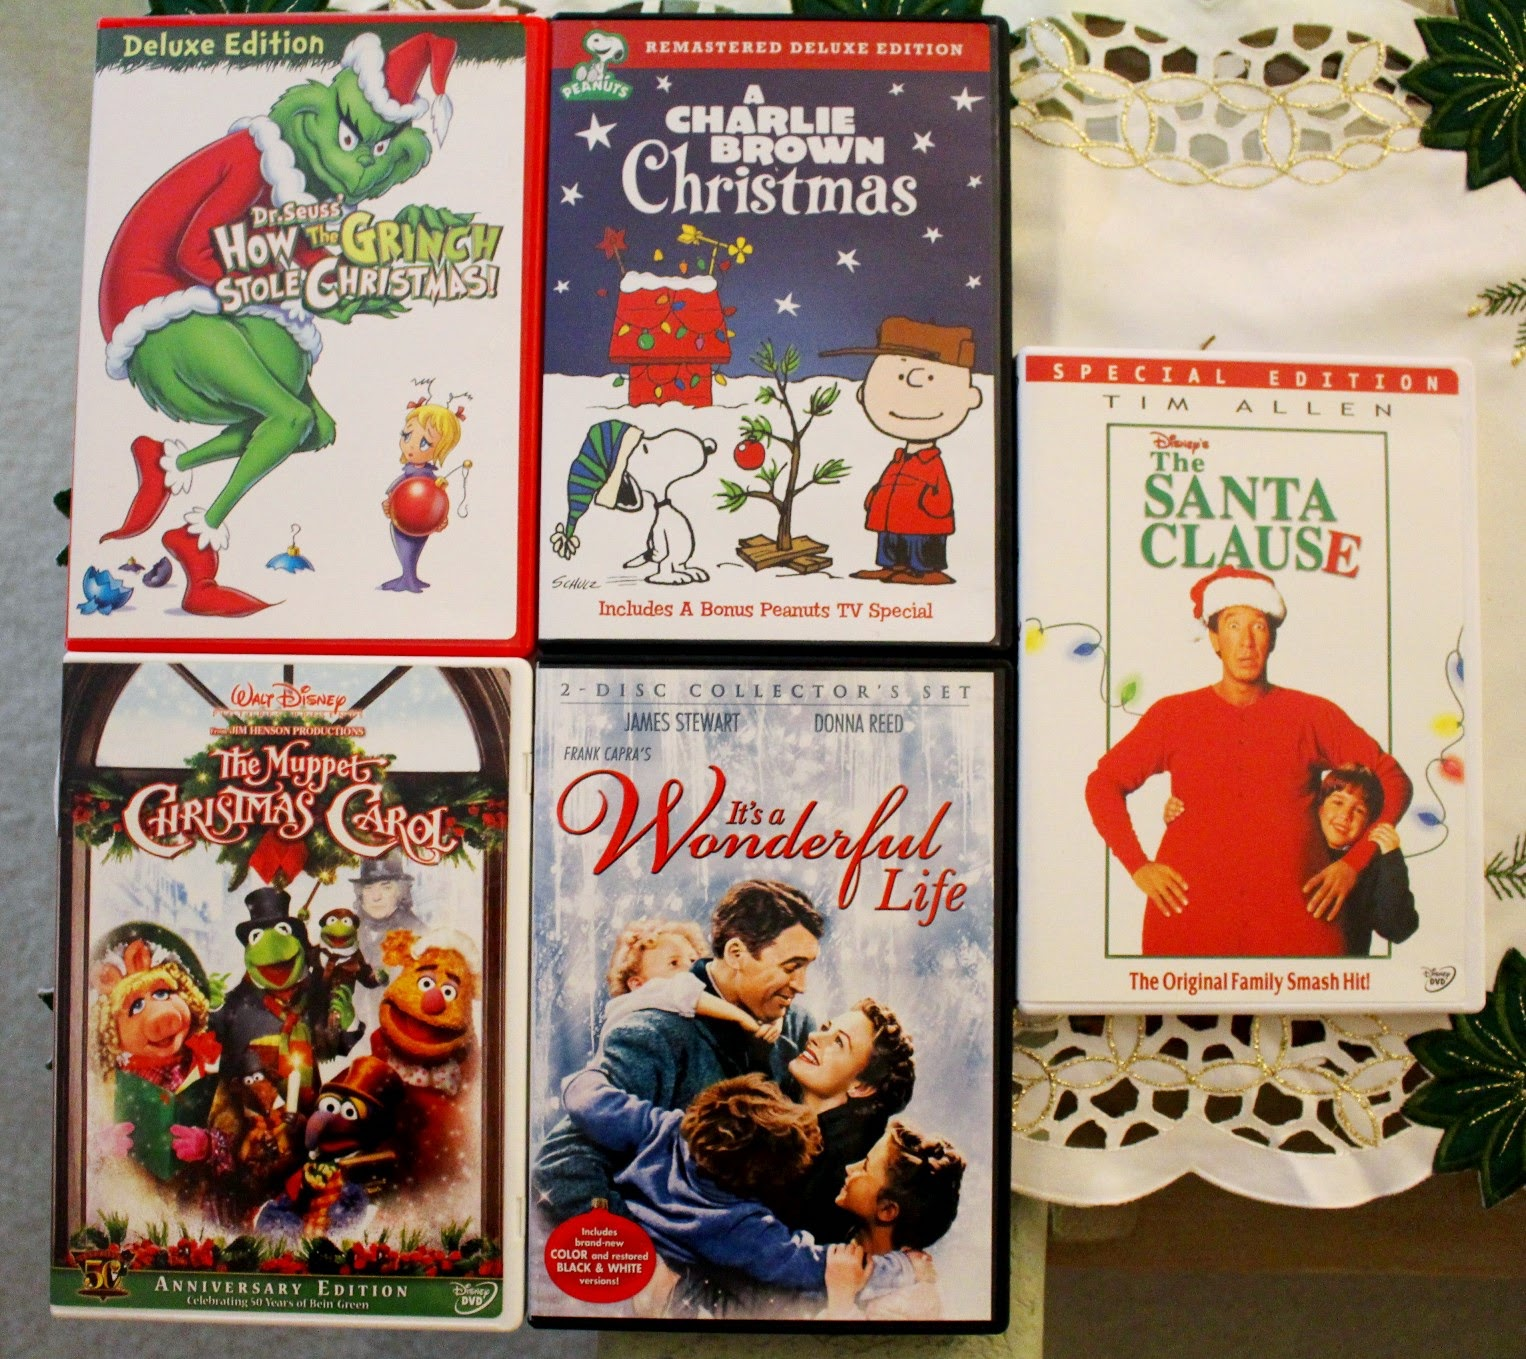 Covers of 5 Christmas movies- The Grinch, Charlie Brown, Muppet Christmas Carol, Its a Wonderful Life, Santa Clause